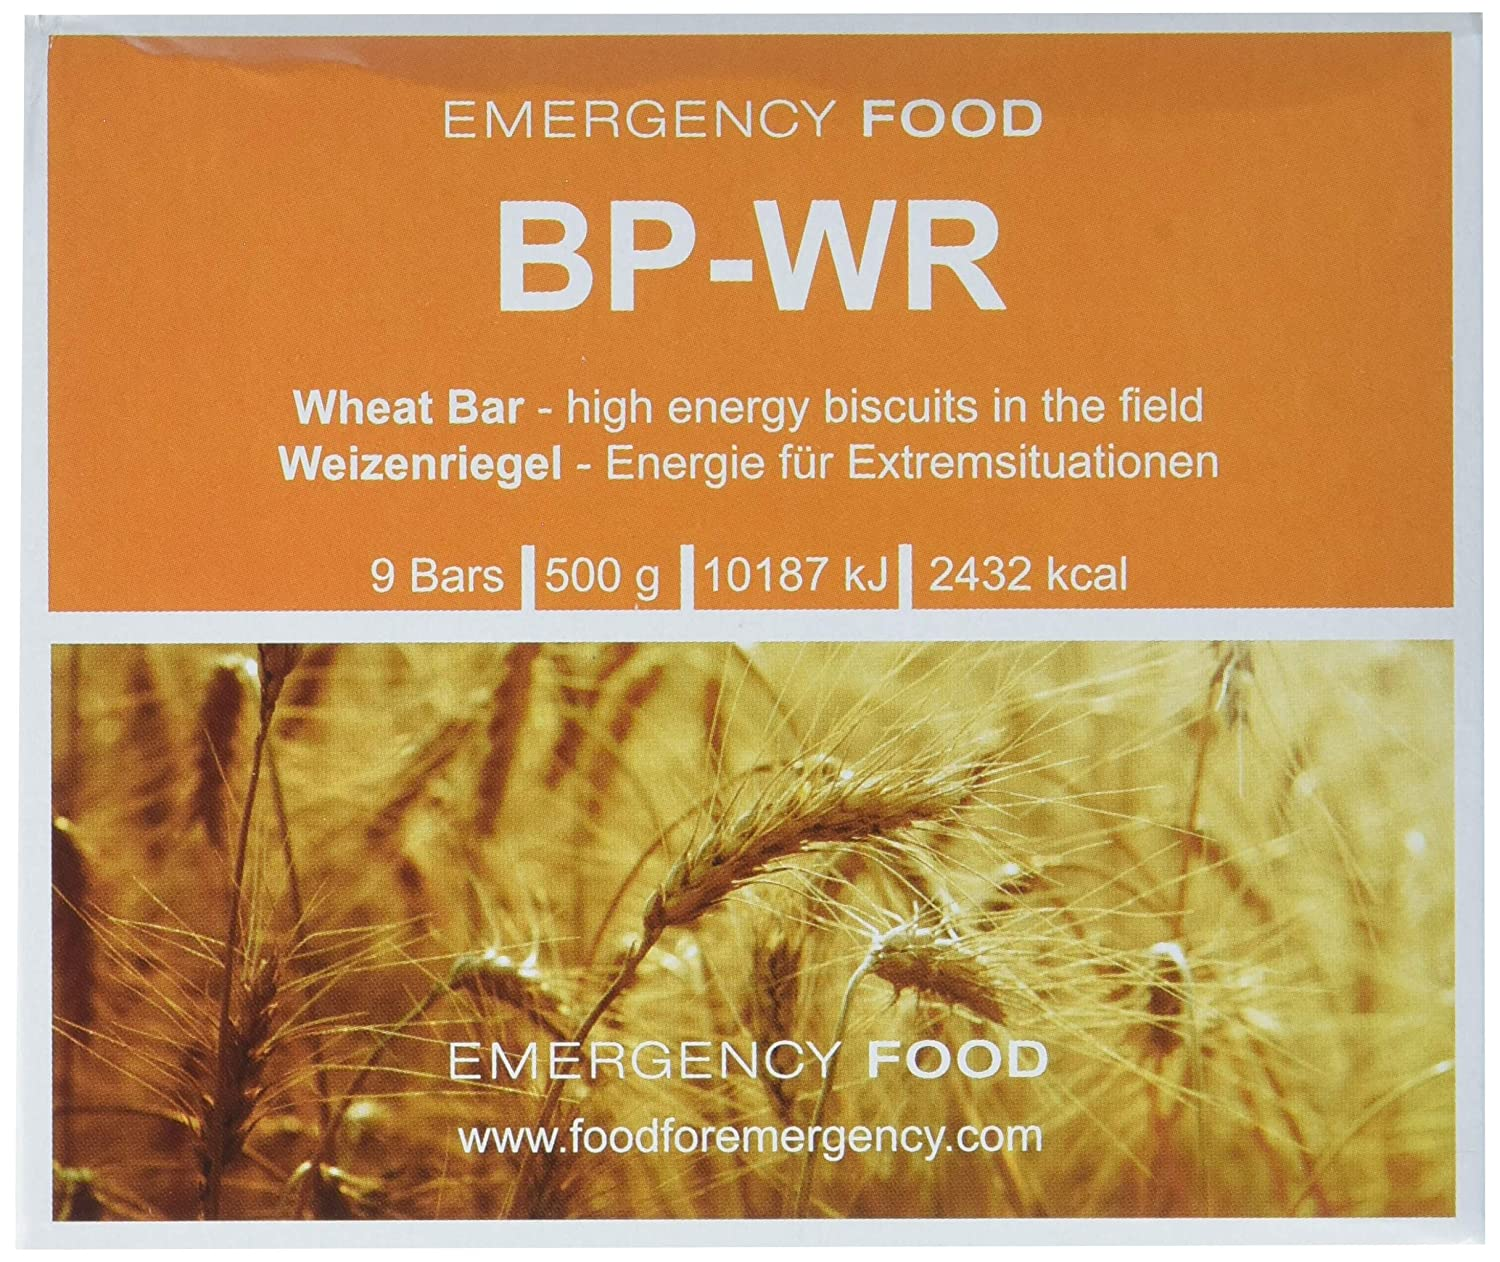 BP WR – Emergency Food – Emergency Provisions, Long Term Nutrition BP5 by buy+smile Compact 230100